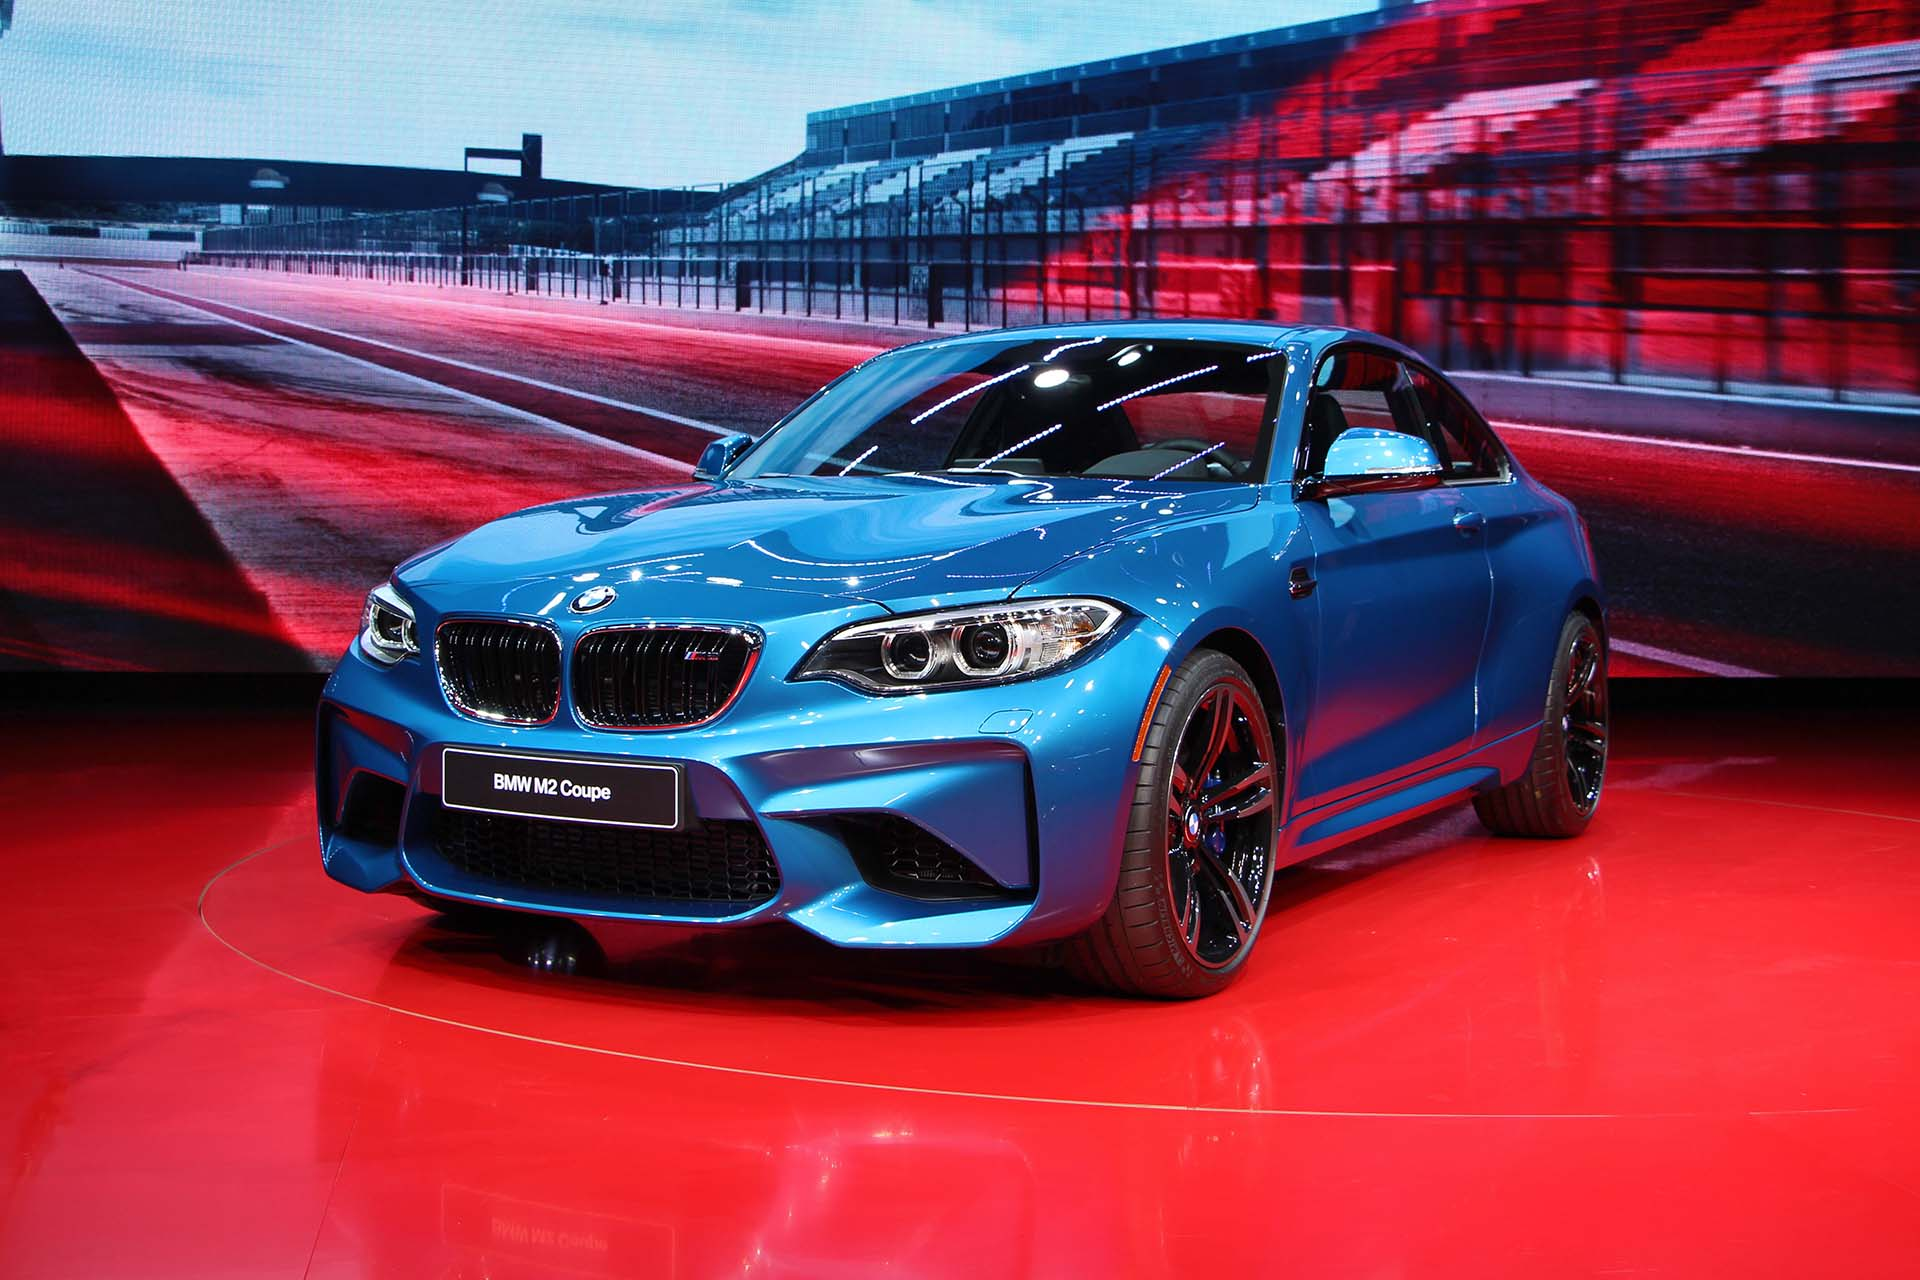 """But we promised you the hotness, and here it is: the BMW M2 Coupe – rear-wheel drive, manual transmission, 365 horses. """"New king of the pocket rockets?"""" editor Jonathan Yarkony asks. We say yes."""